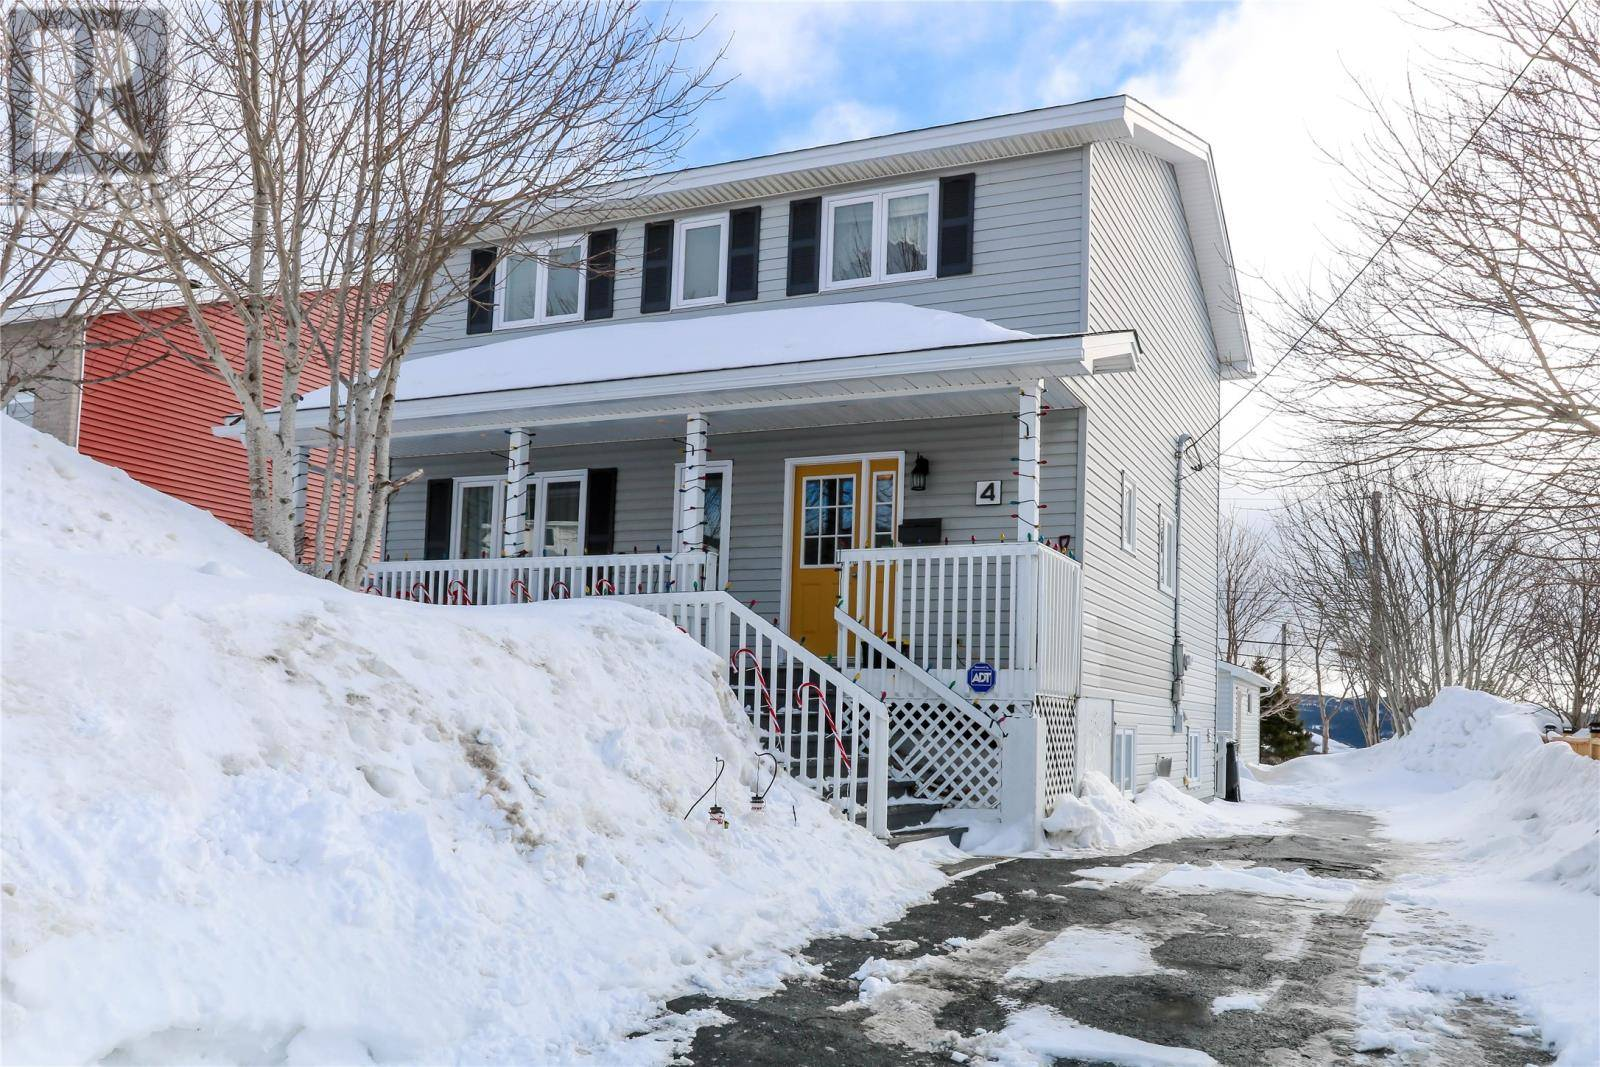 House for sale at 4 Point Leamington St St. John's Newfoundland - MLS: 1211357